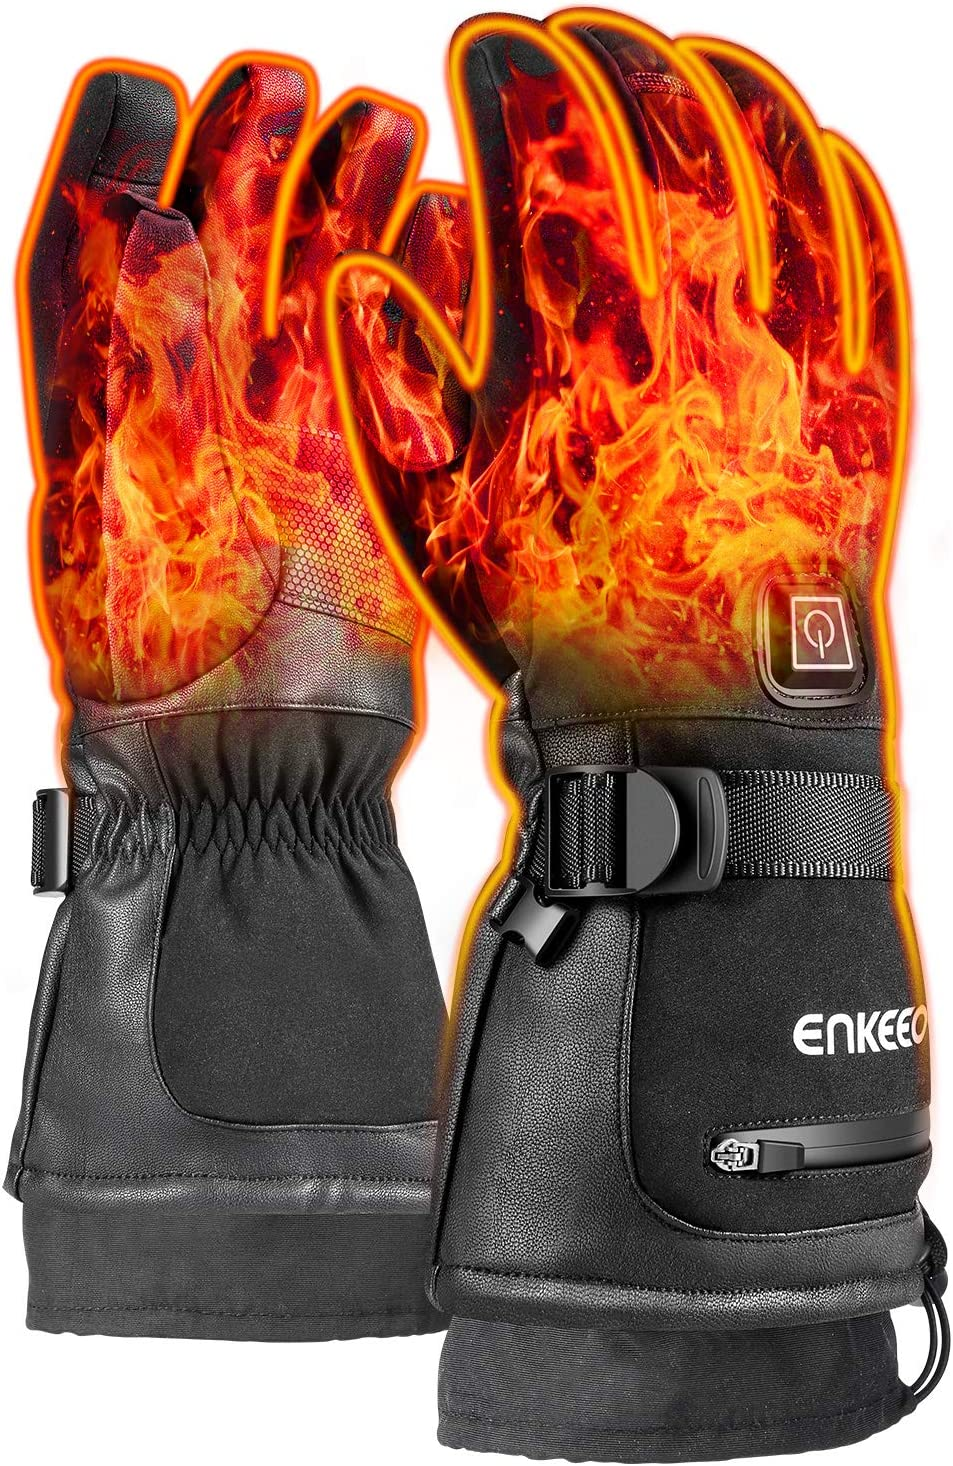 3 Levels Temperature Control ENKEEO Heated Gloves with 7.4V 2200MAH Quick Rechargeable Battery Pack Touch Screen for Men Women Winter Outdoor Cycling Skiing Skating Hiking Windproof /& Windproof